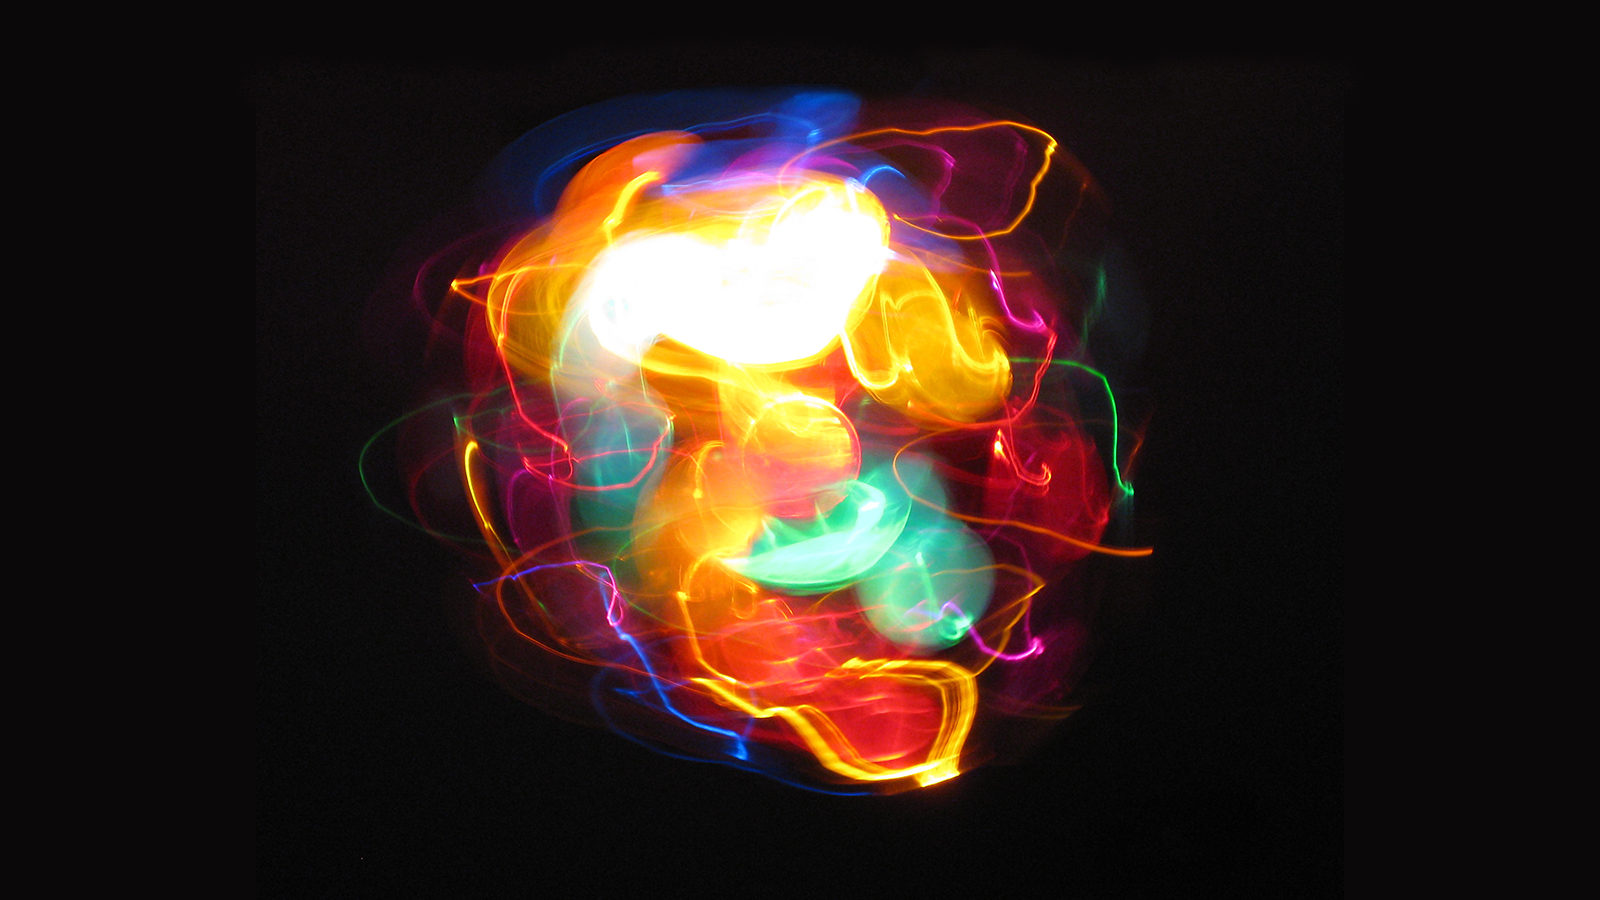 Long-exposure photo showing many colors of light